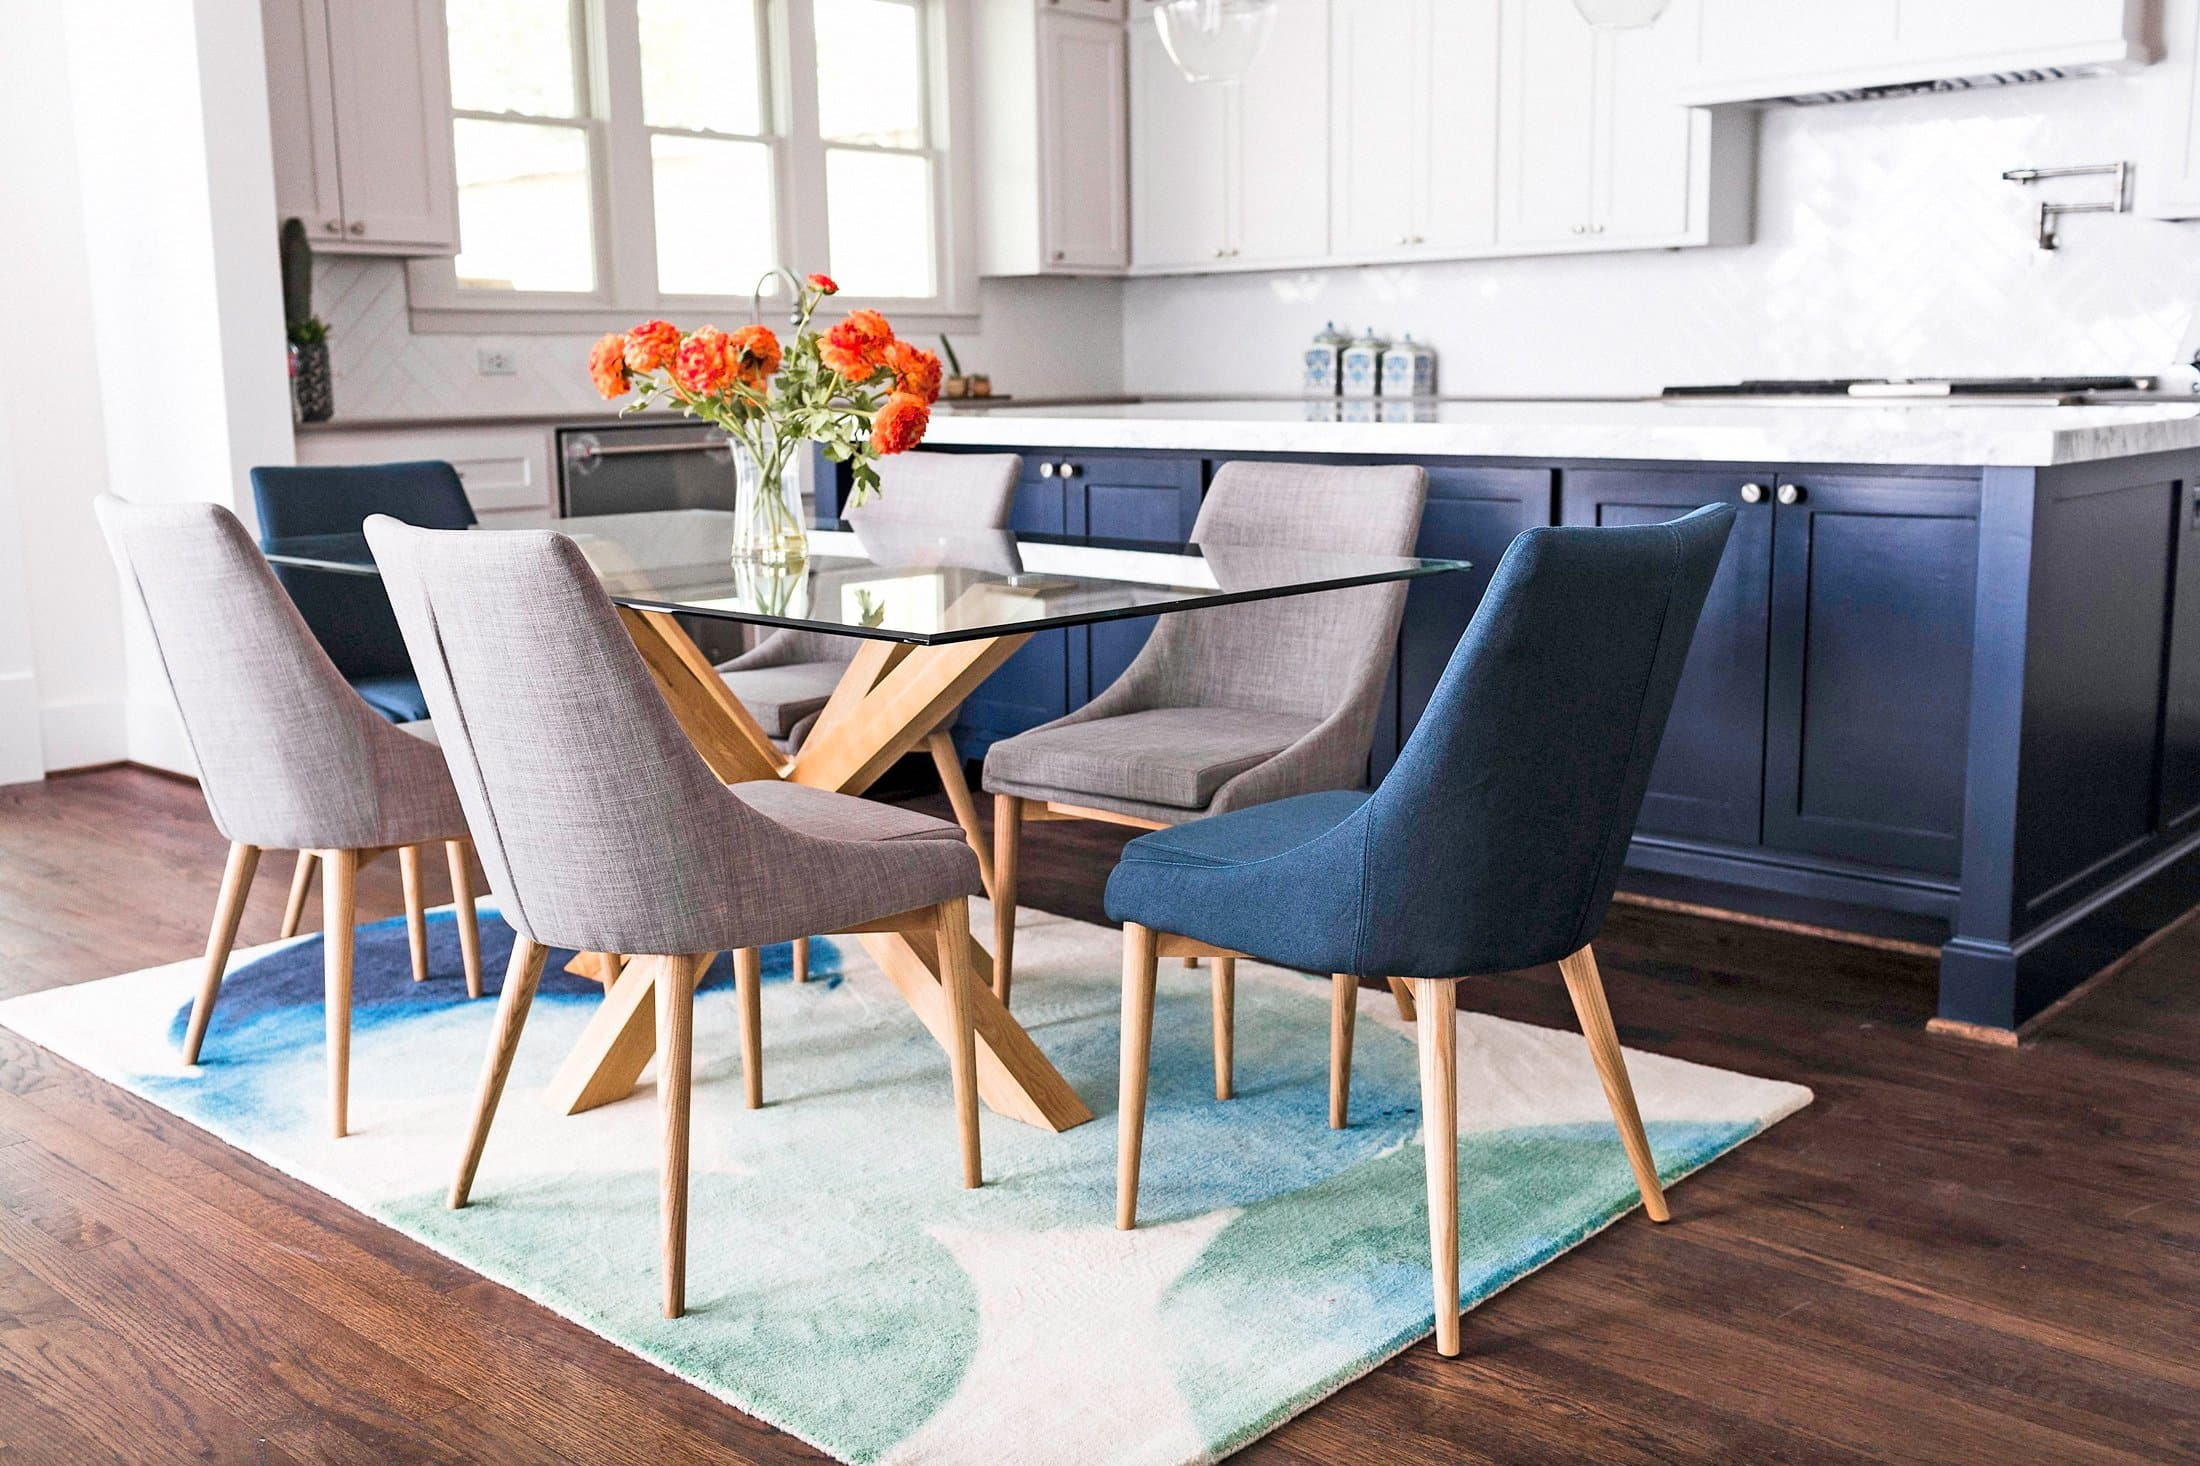 Picture of: Jessica Modern Dining Chairs Set Of 2 Teal Blue Upholstered Fabric Edloe Finch Furniture Co